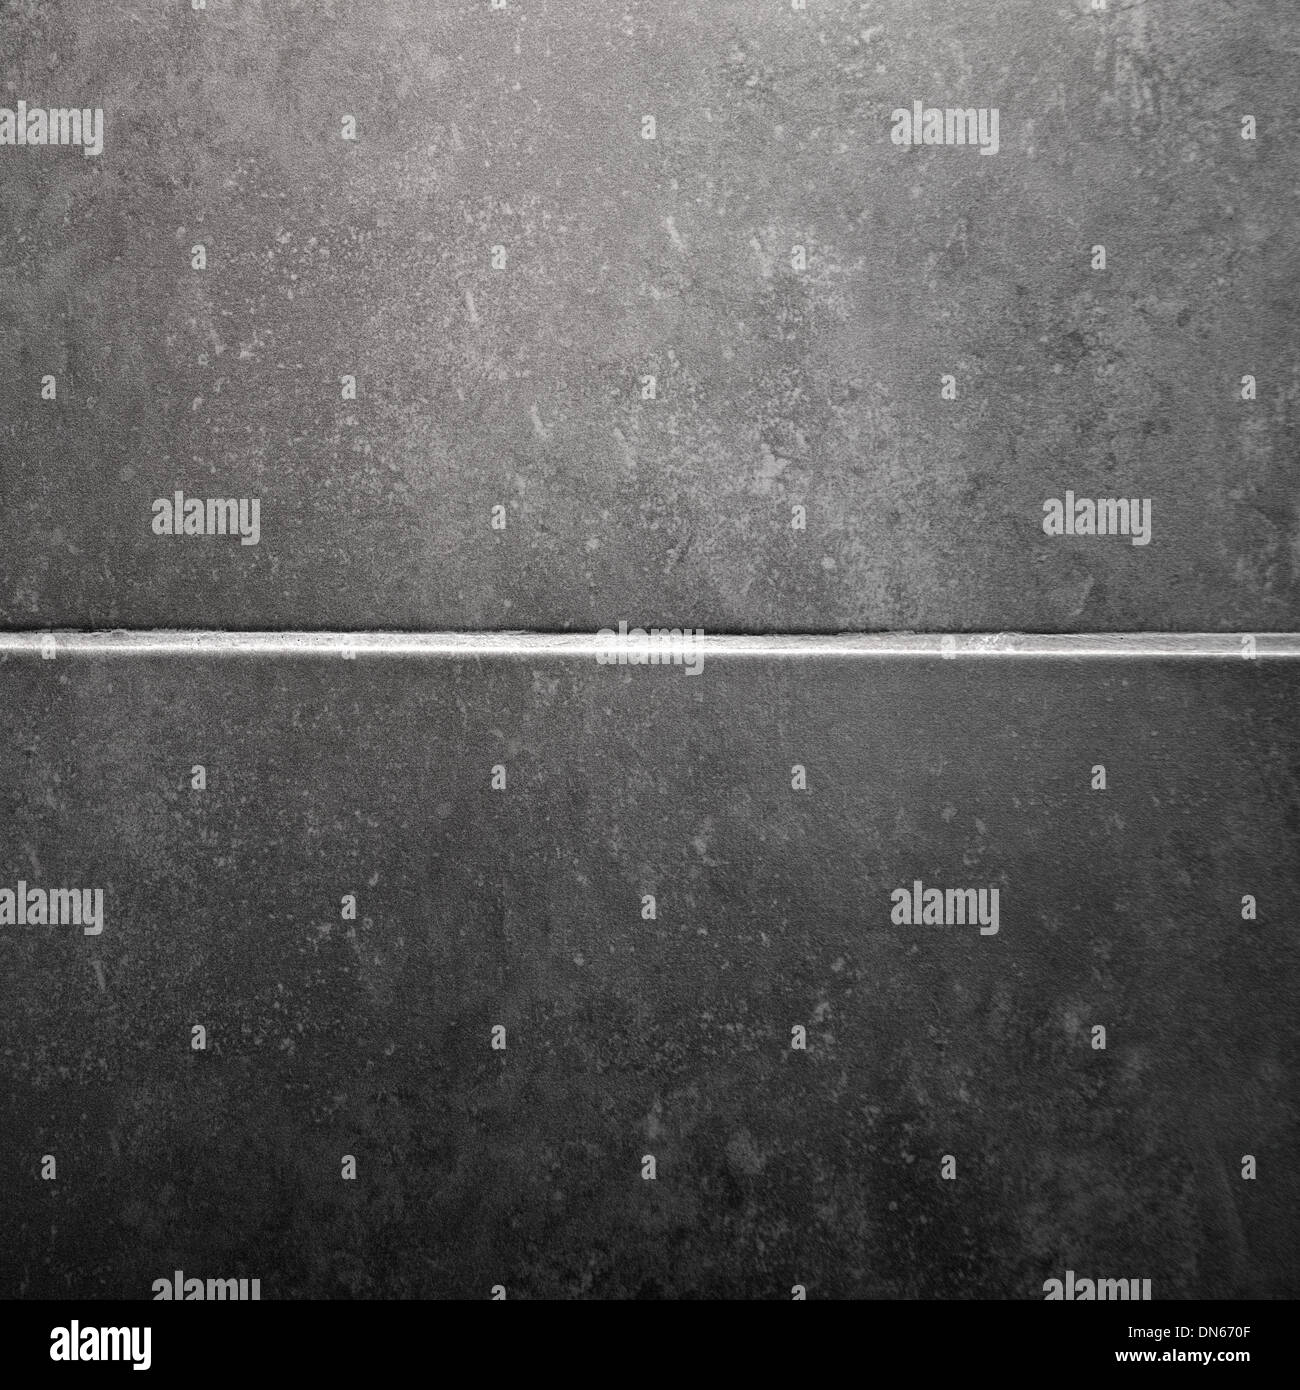 Ceramic tiles texture ceramic tiles texture gray ceramic tiles for wall or floor stock dailygadgetfo Image collections